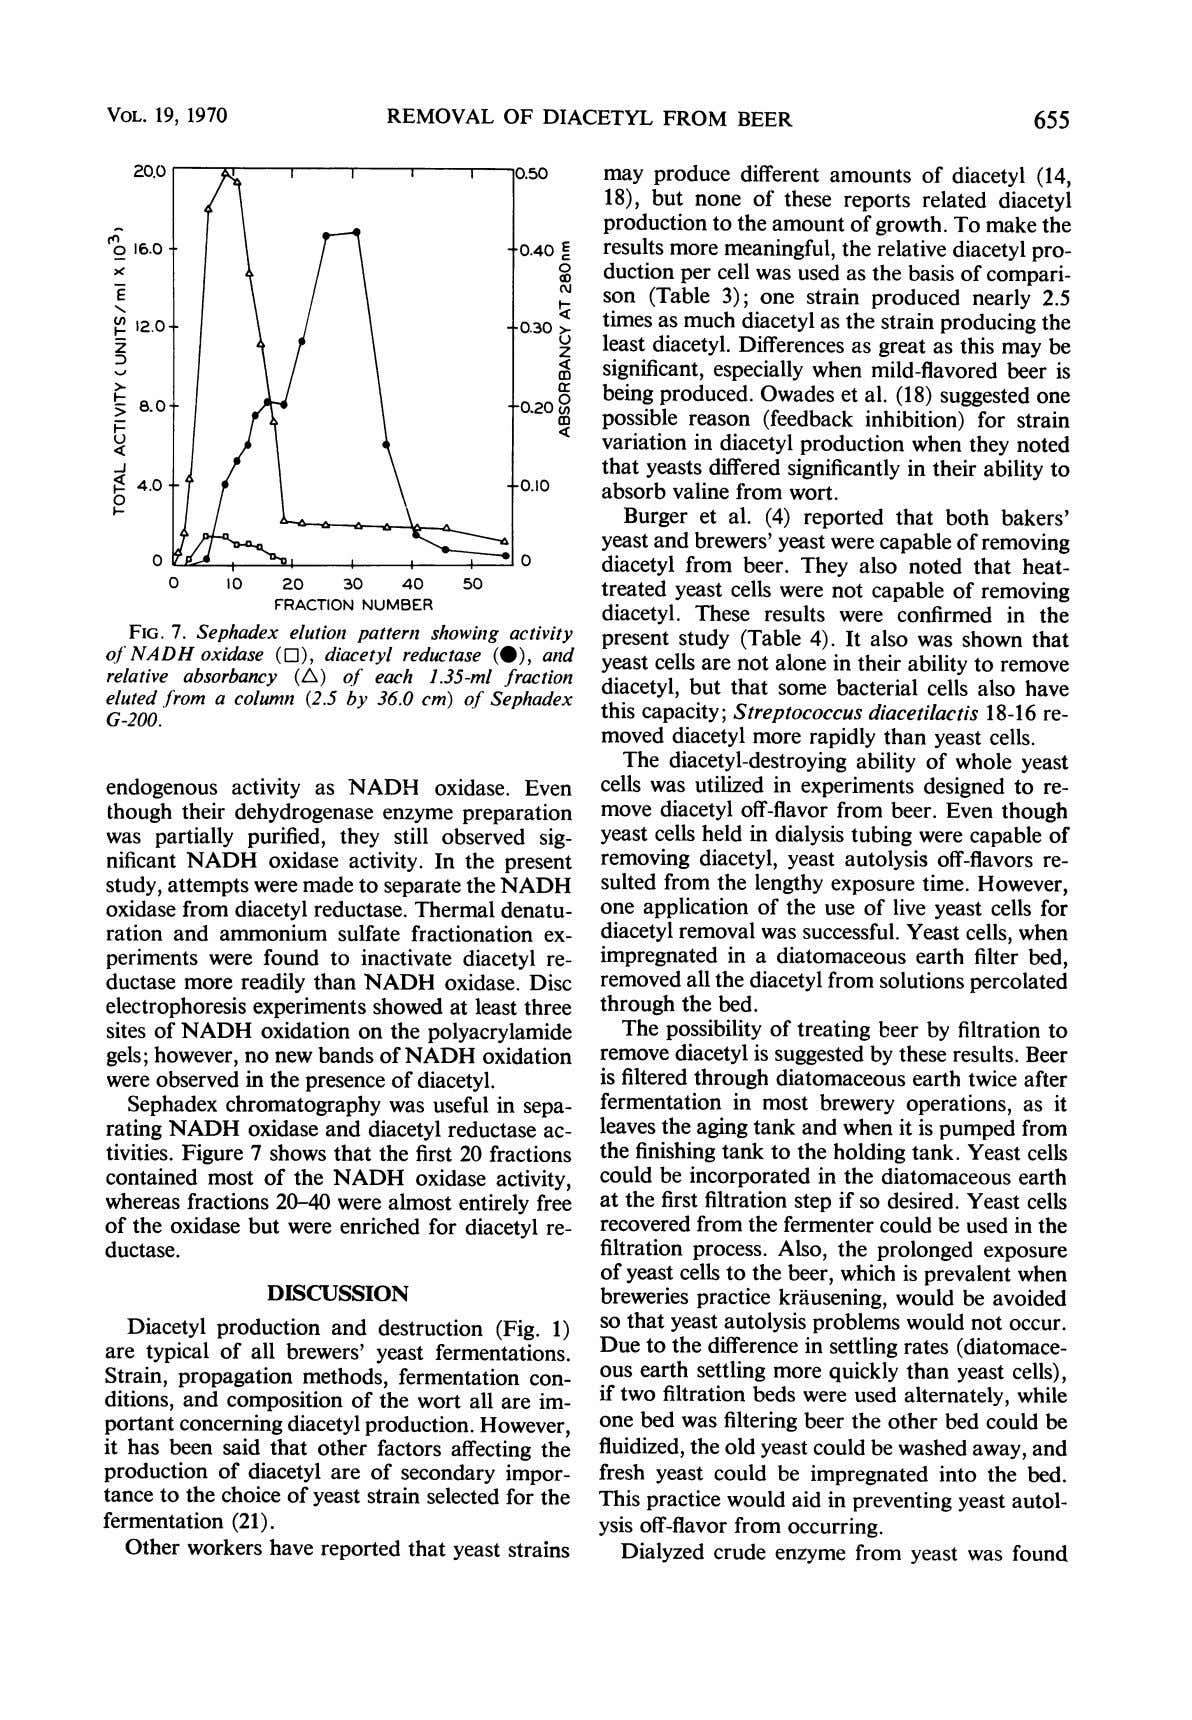 VOL. 19, 1970 REMOVAL OF DIACETYL FROM BEER 655 may produce different amounts of diacetyl